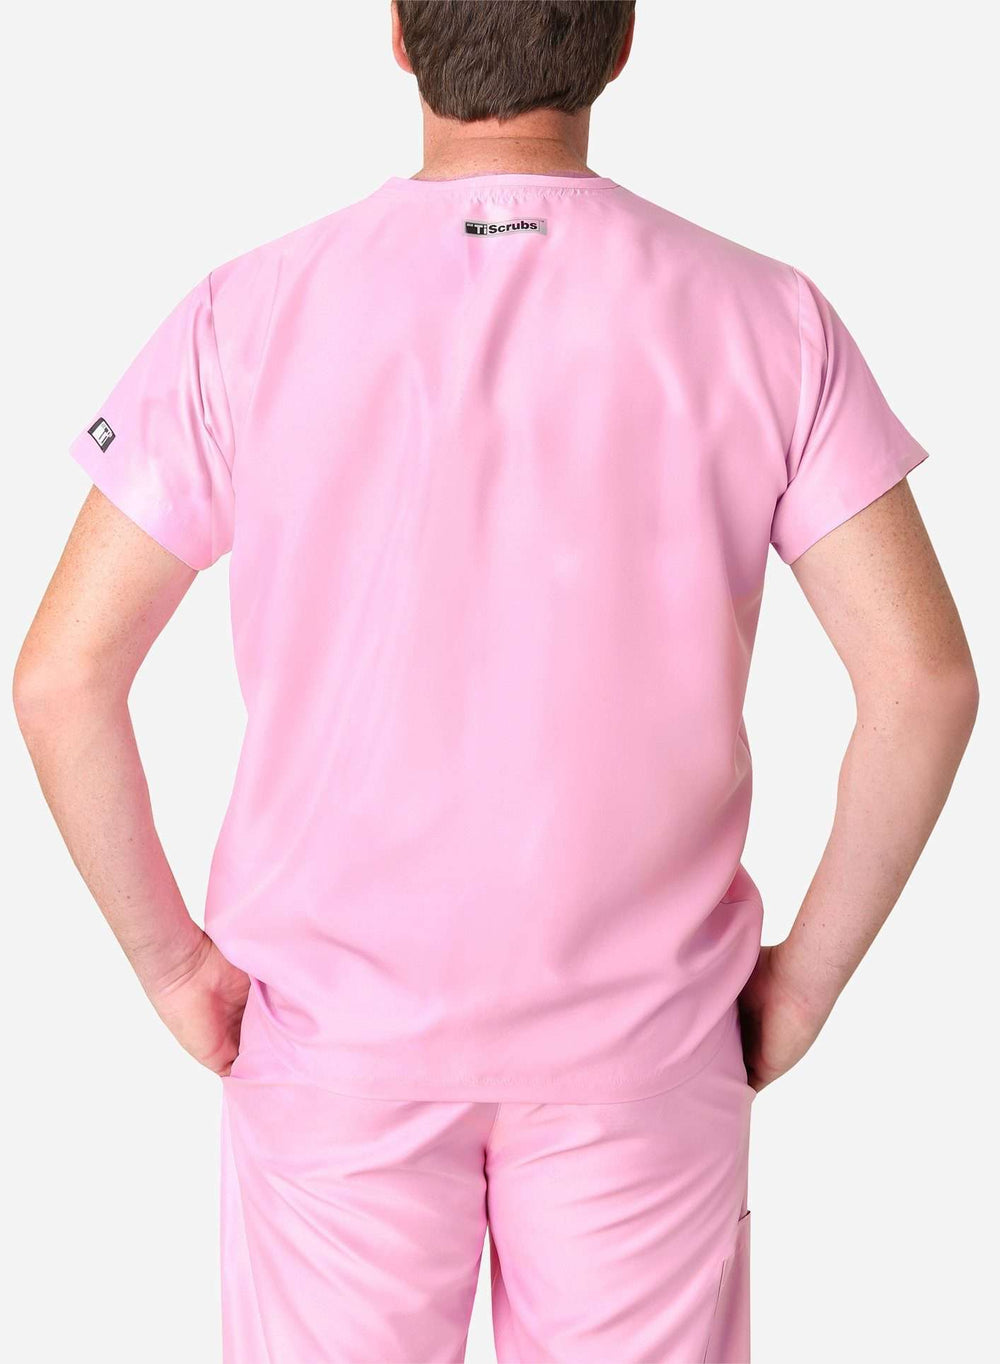 mens simple short sleeve chest pocket scrub top light pink